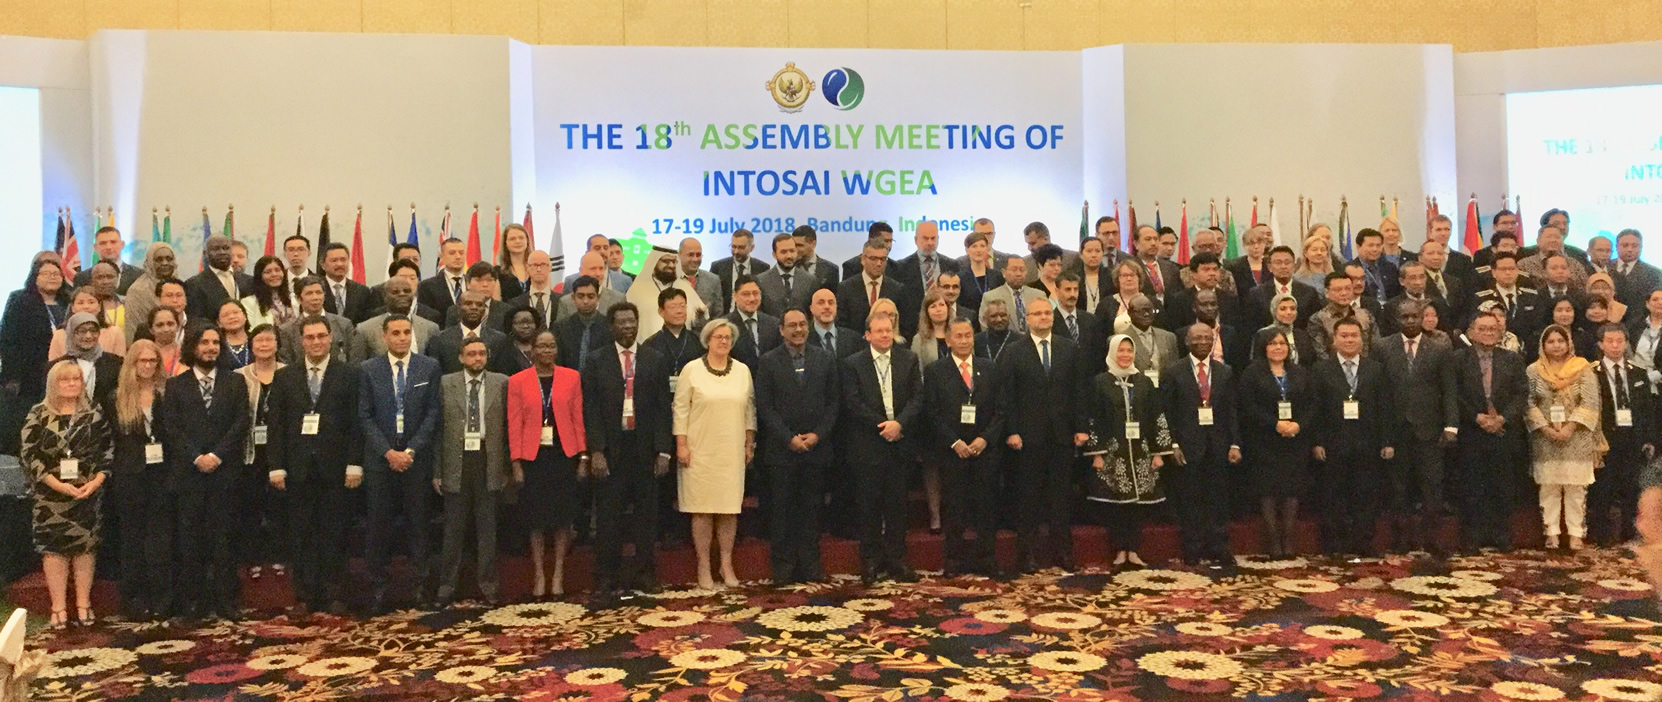 Assembly Meeting of INTOSAI WGEA in Bandung Indonesia